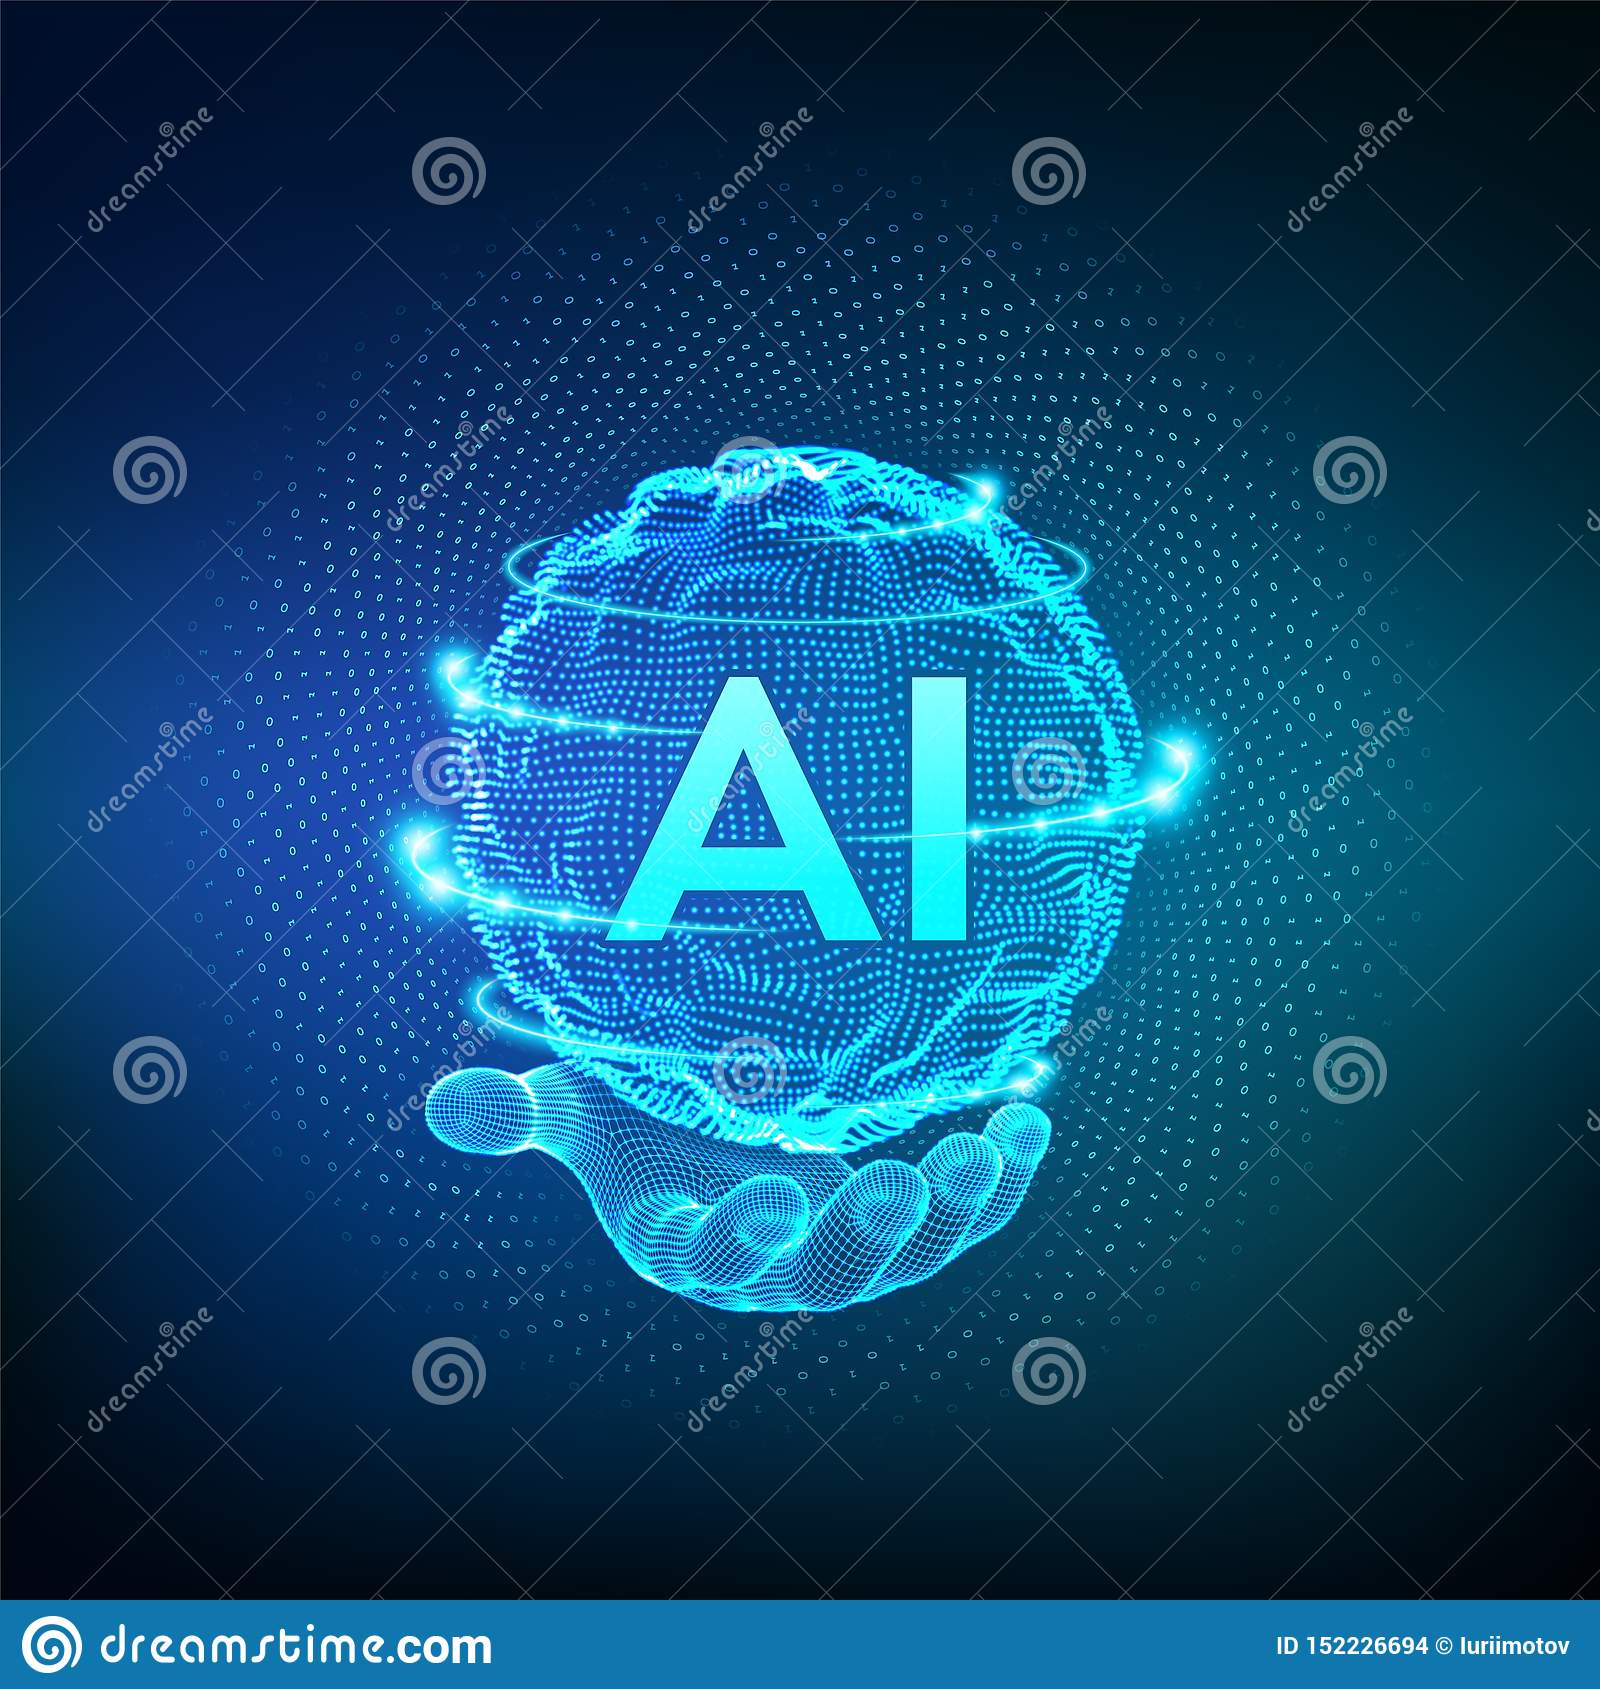 AI . Artificial Intelligence Logo In Hand. Artificial